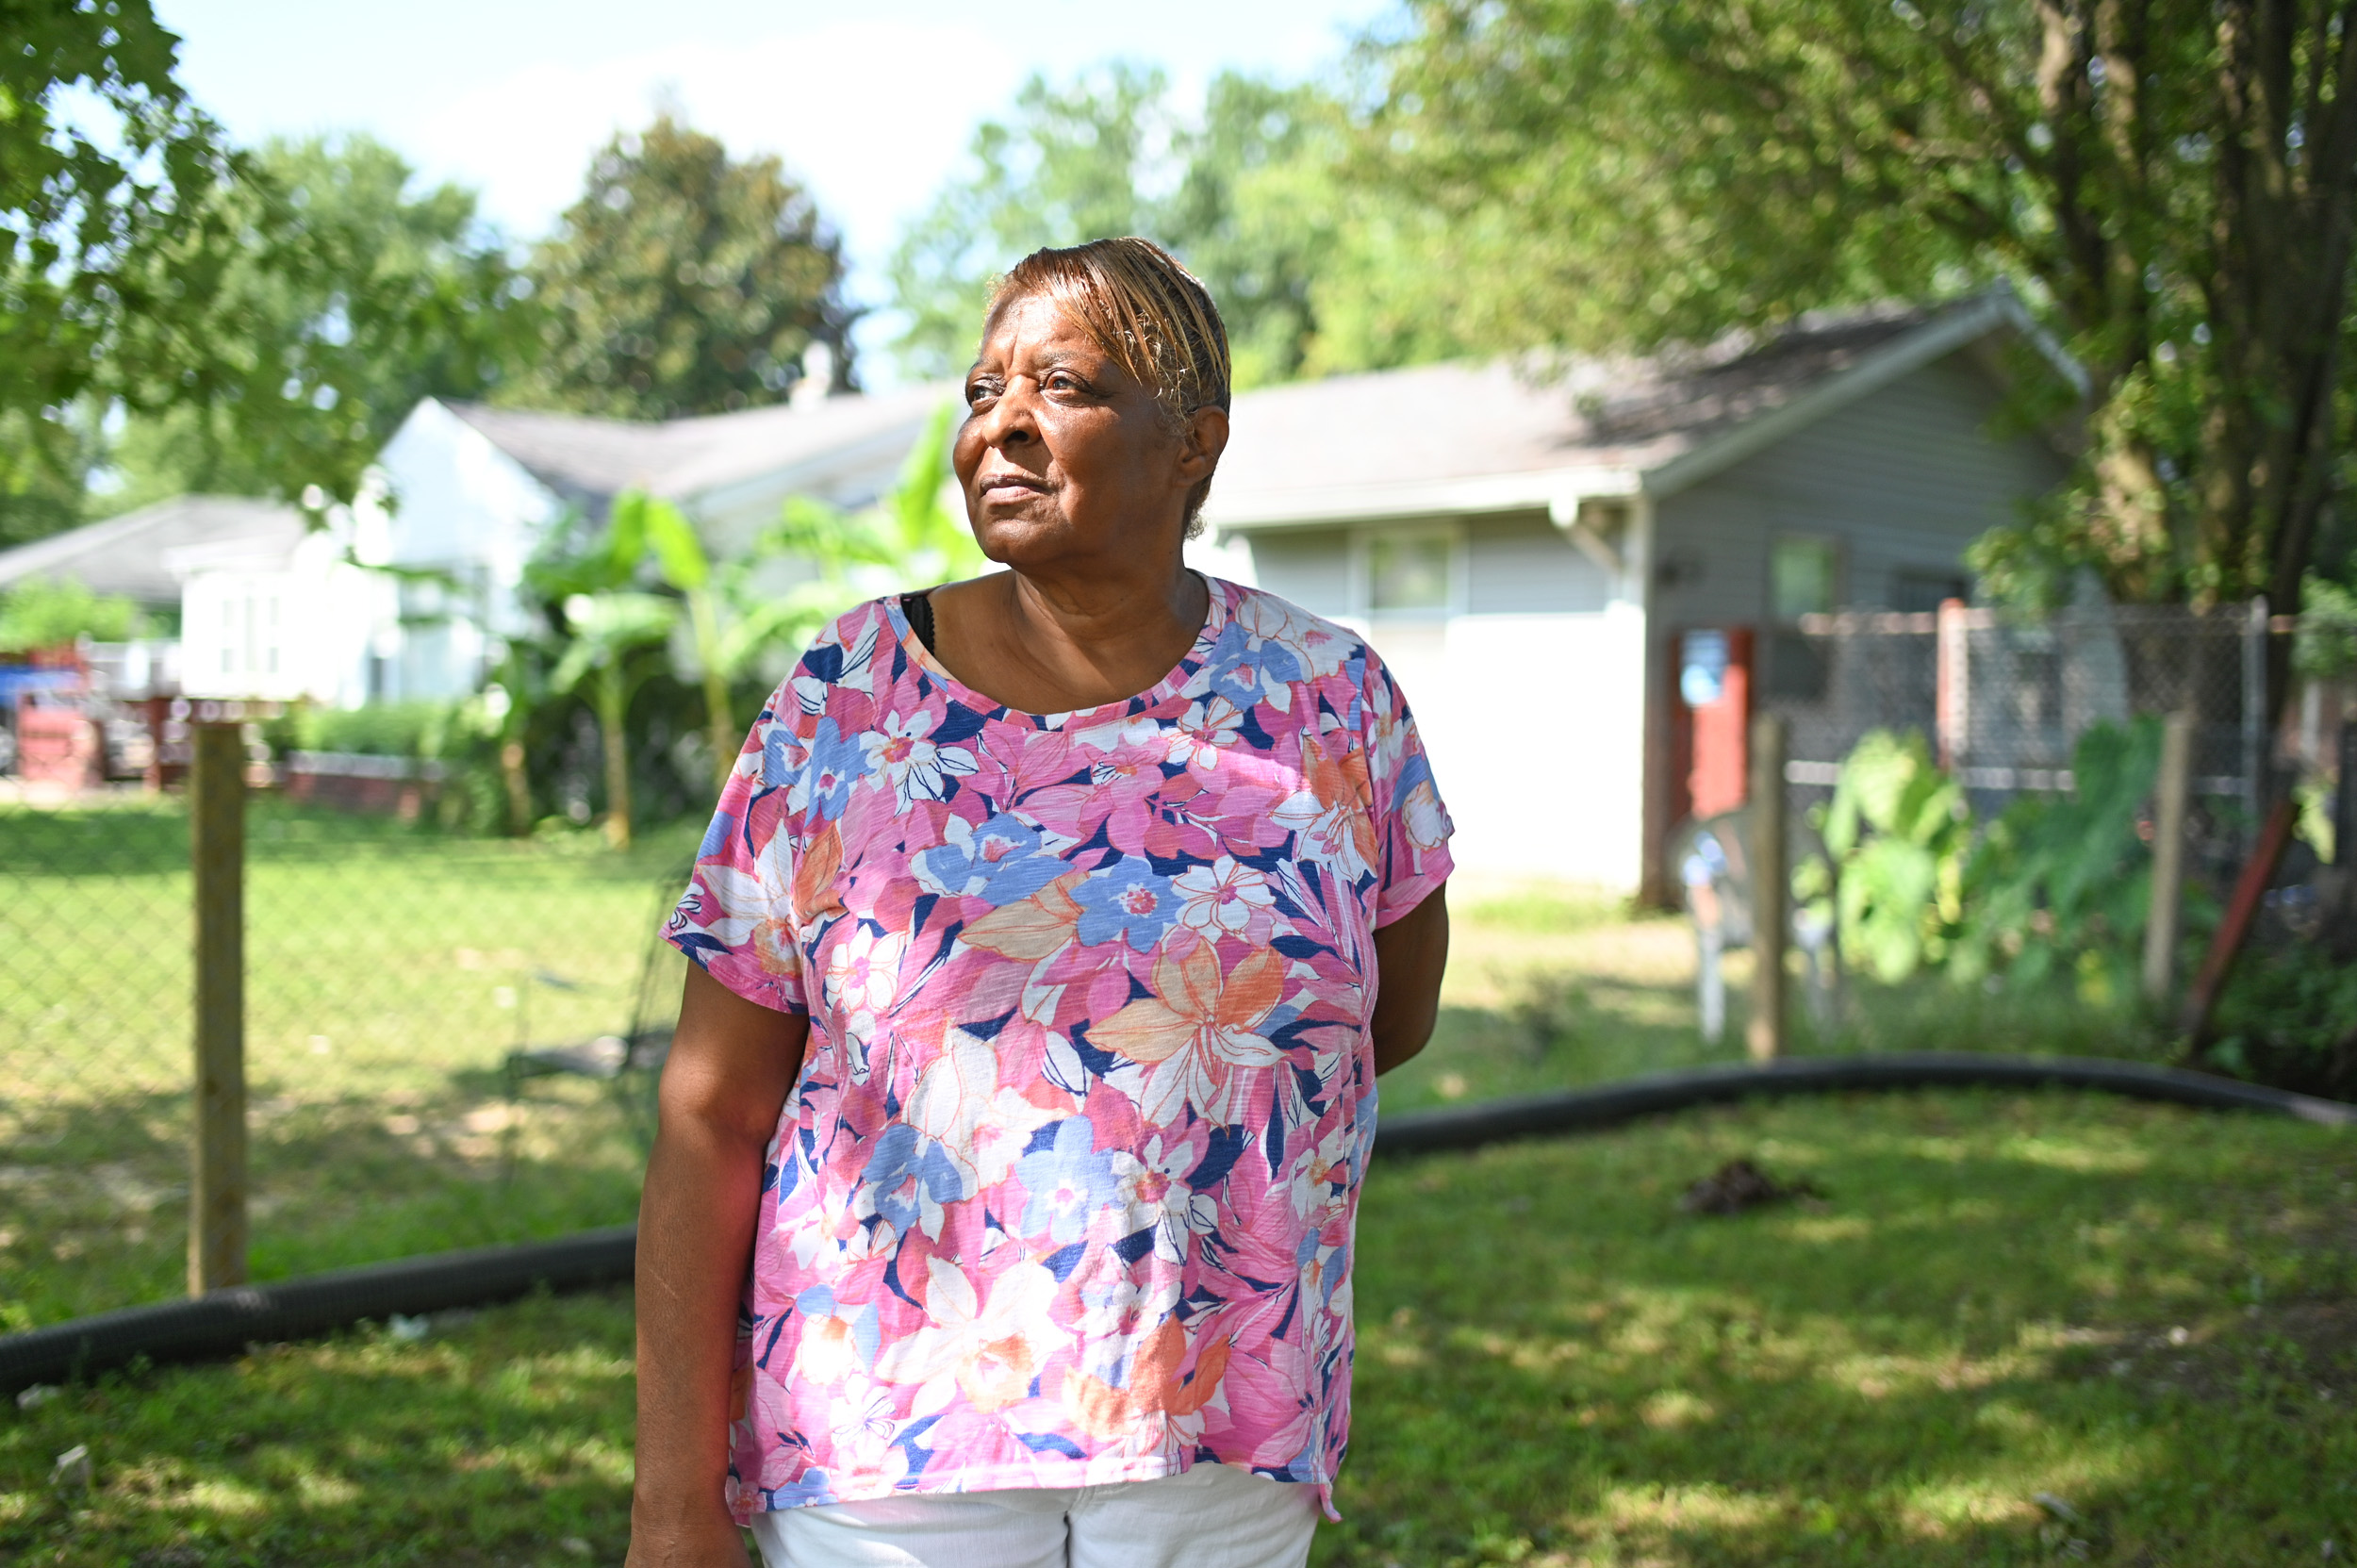 Raw sewage polluted this Black community. Now residents are fighting back.